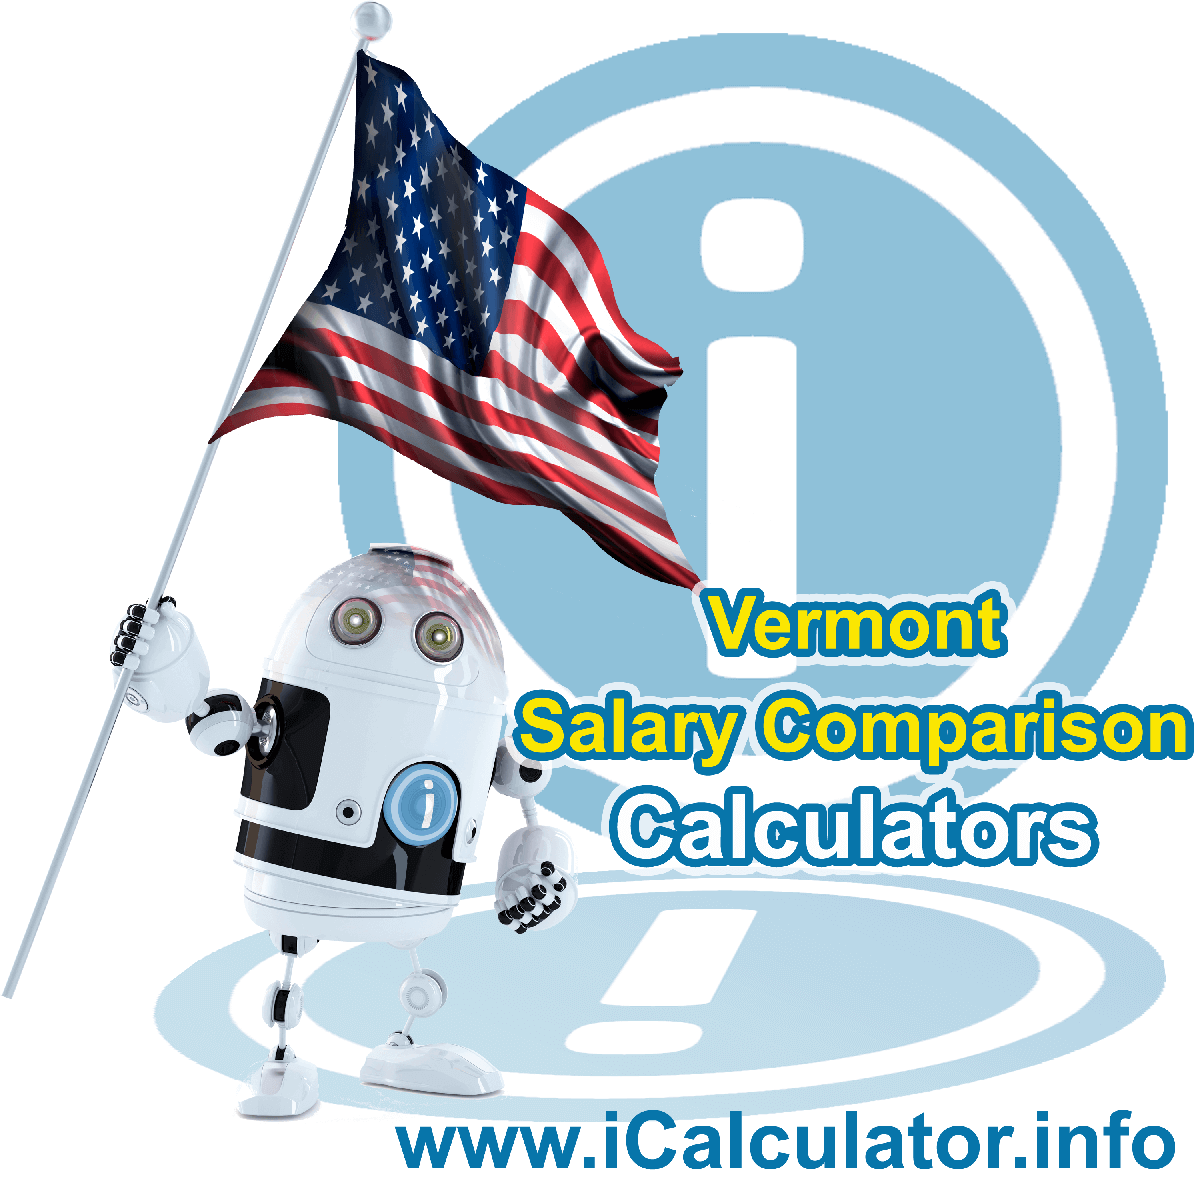 Vermont Salary Comparison Calculator 2021 | iCalculator™ | The Vermont Salary Comparison Calculator allows you to quickly calculate and compare upto 6 salaries in Vermont or between other states for the 2021 tax year and historical tax years. Its an excellent tool for jobseekers, pay raise comparison and comparison of salaries between different US States